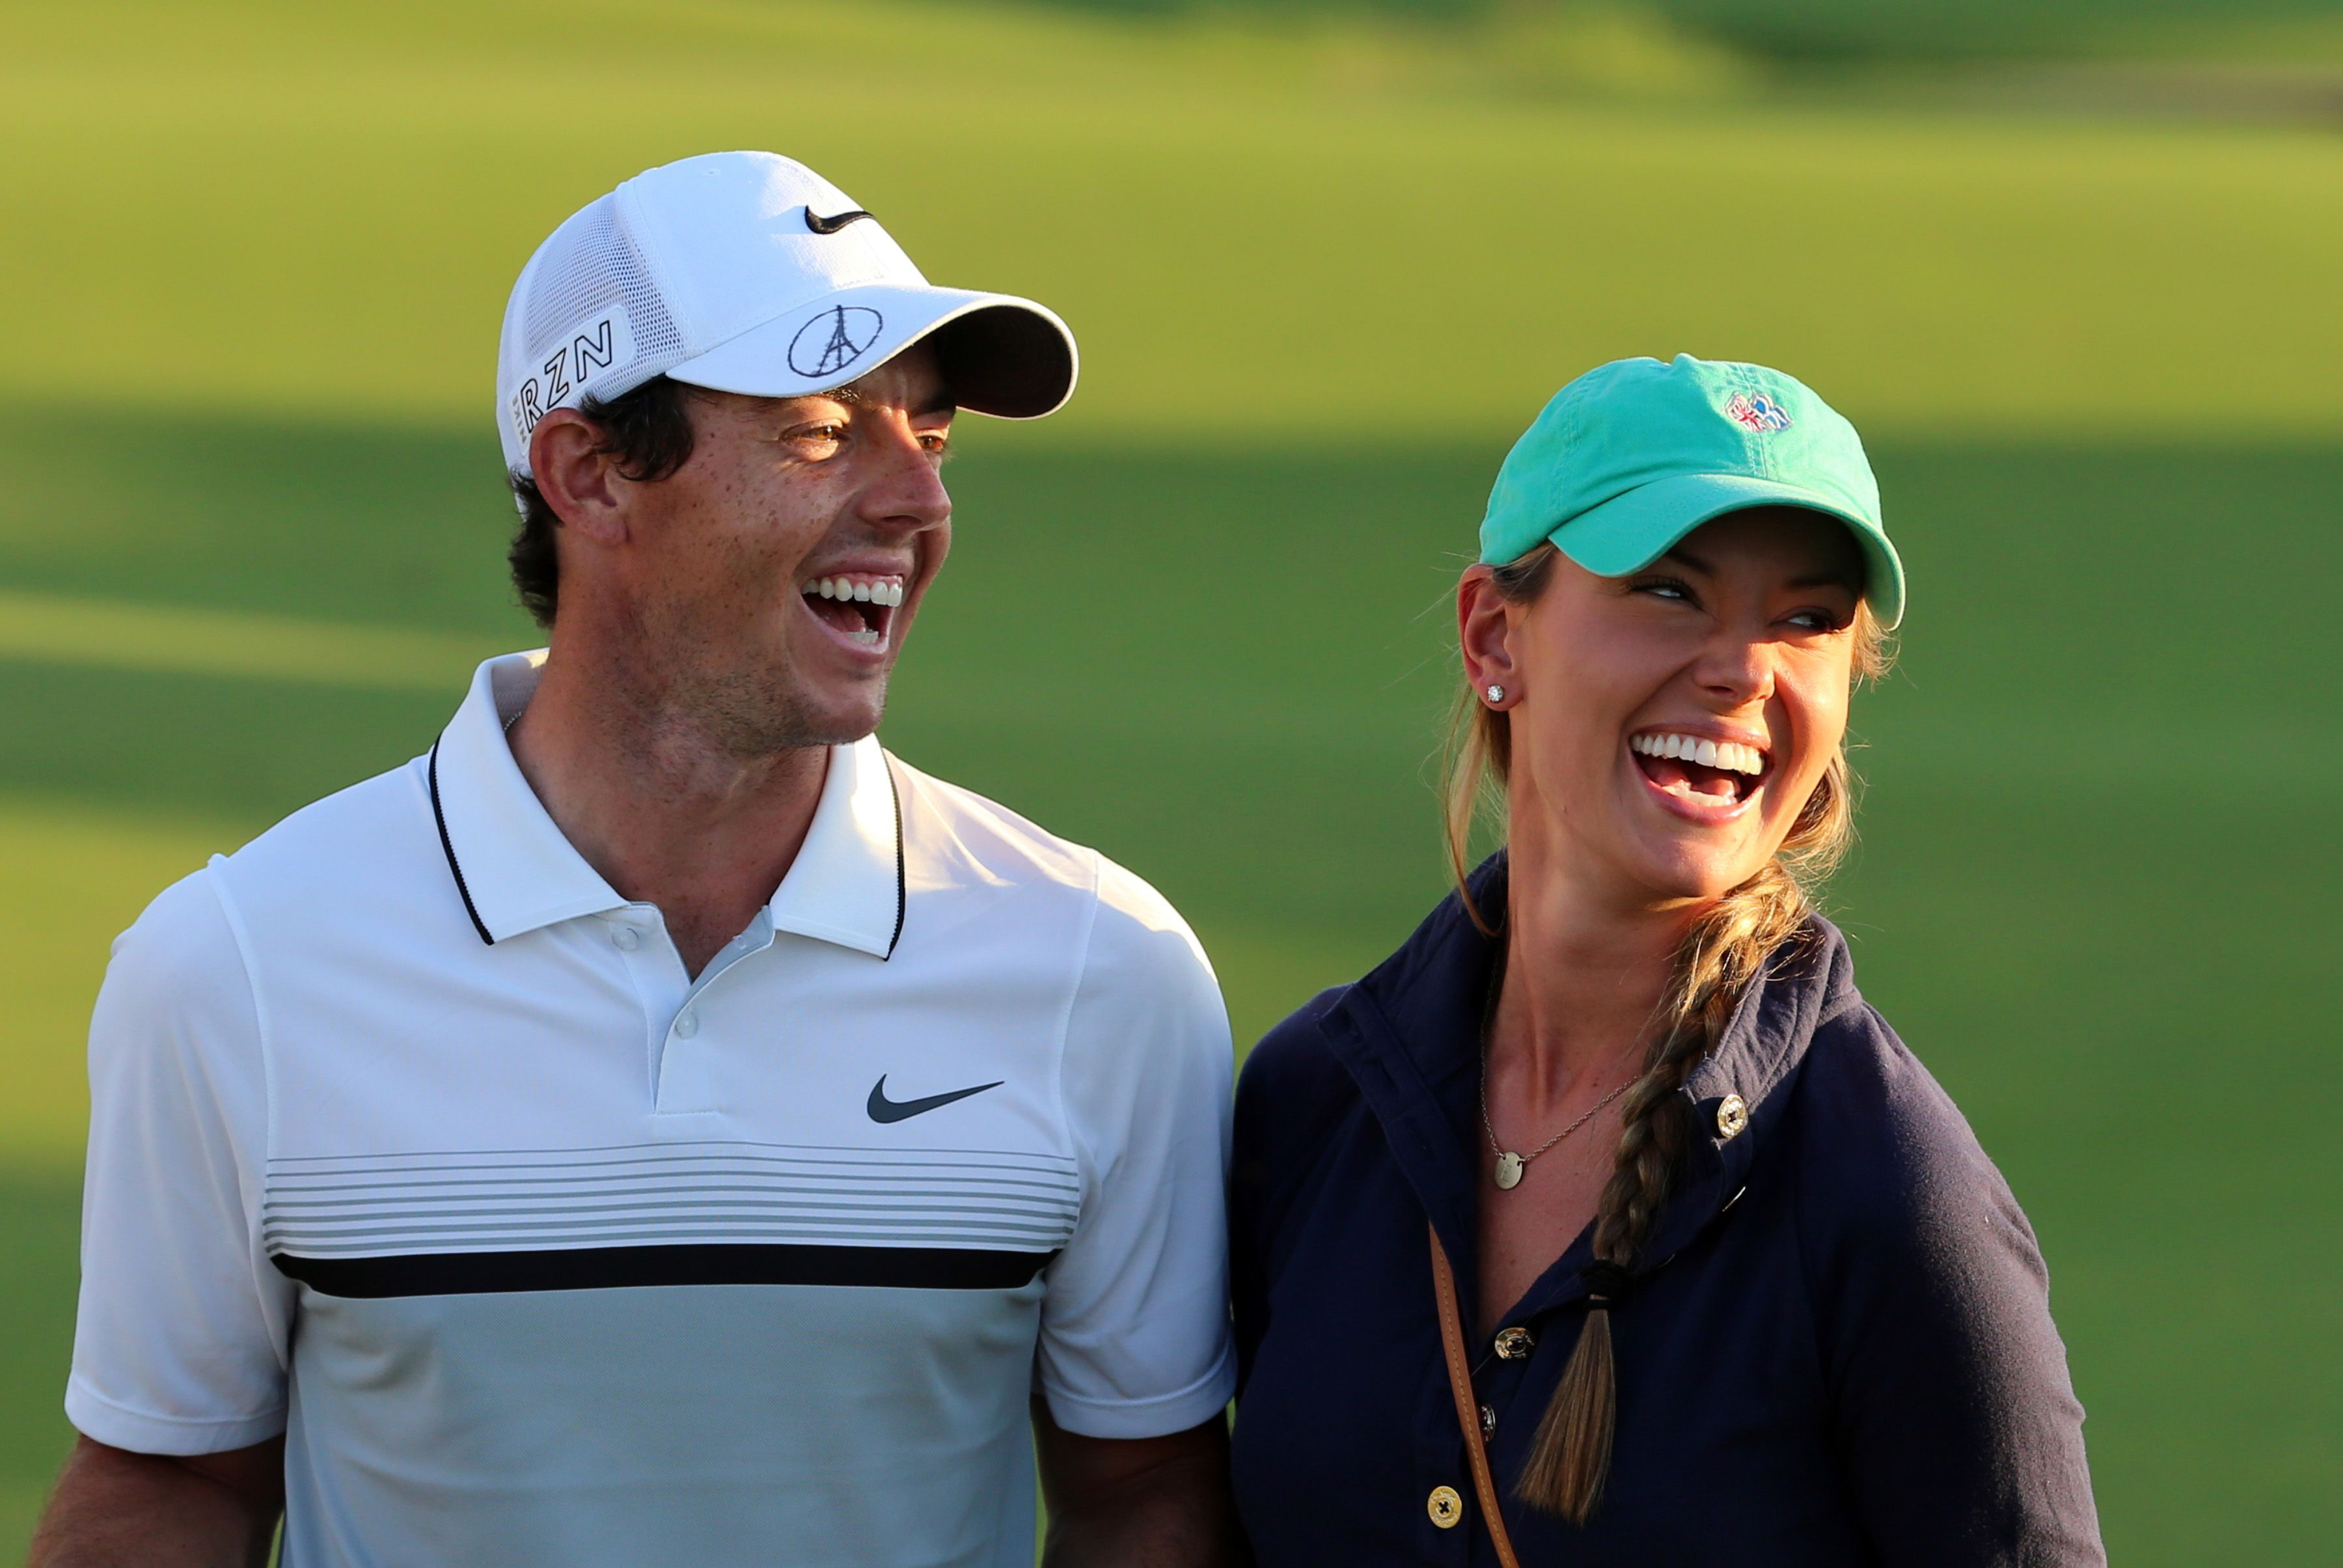 Rory Mcilroy On His Wedding The Best Weekend Of My Life Rory Mcilroy Dubai Golf Rory Mcllroy